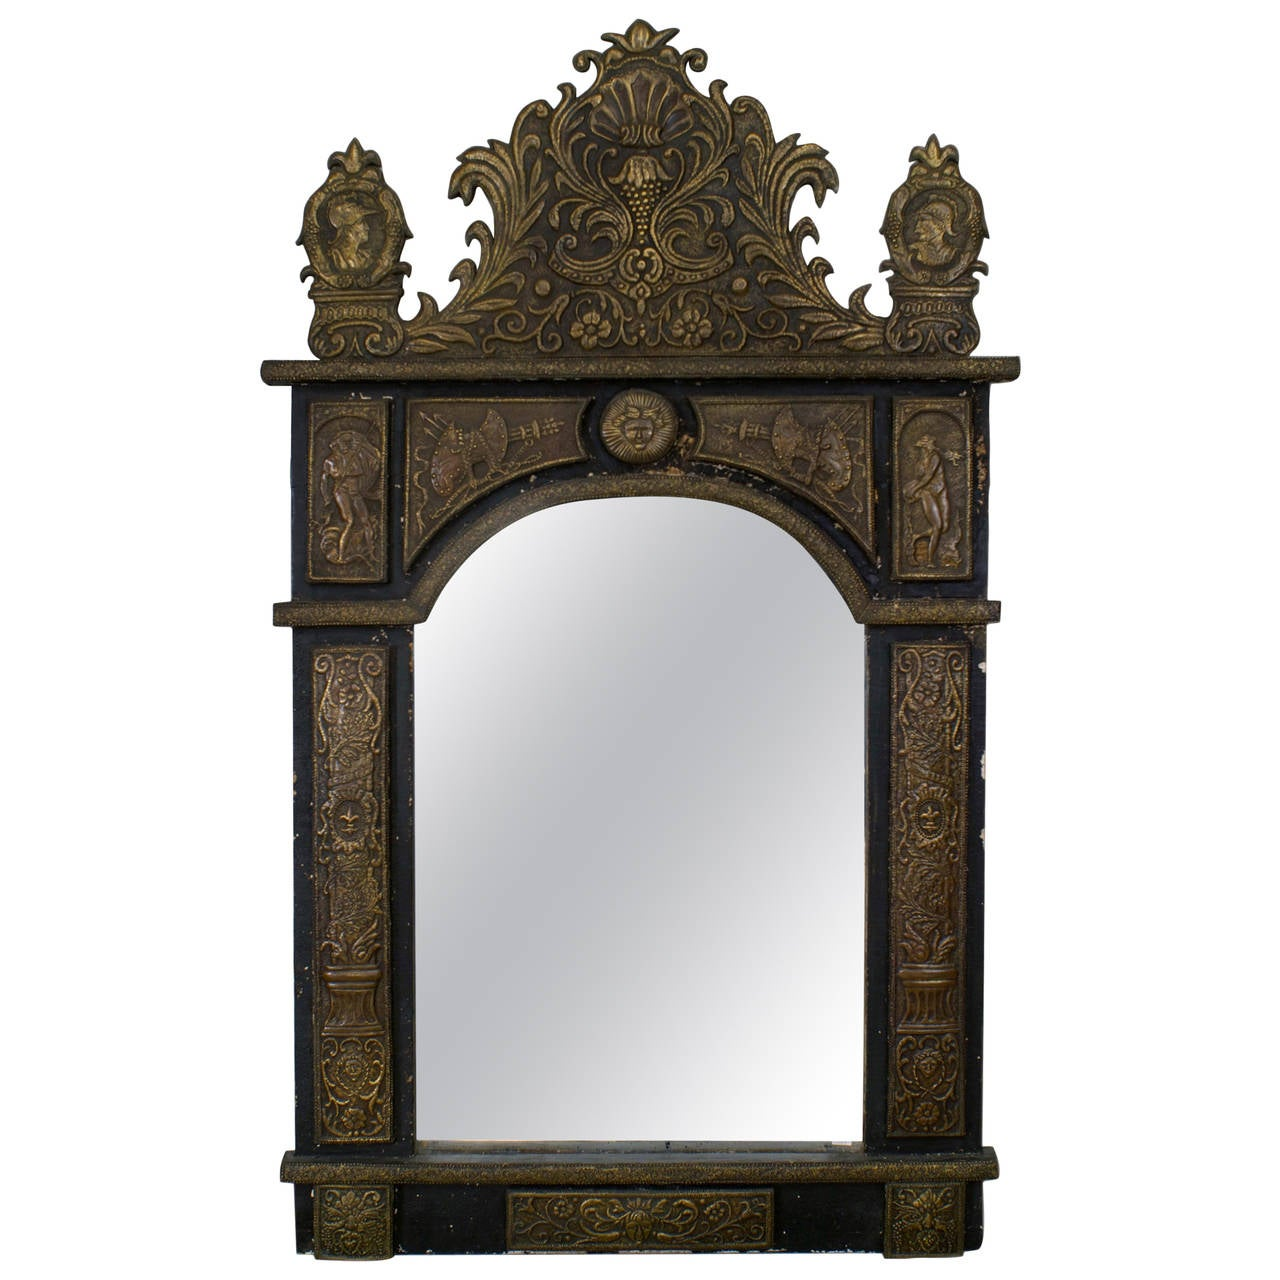 Wall decorated with mirrors